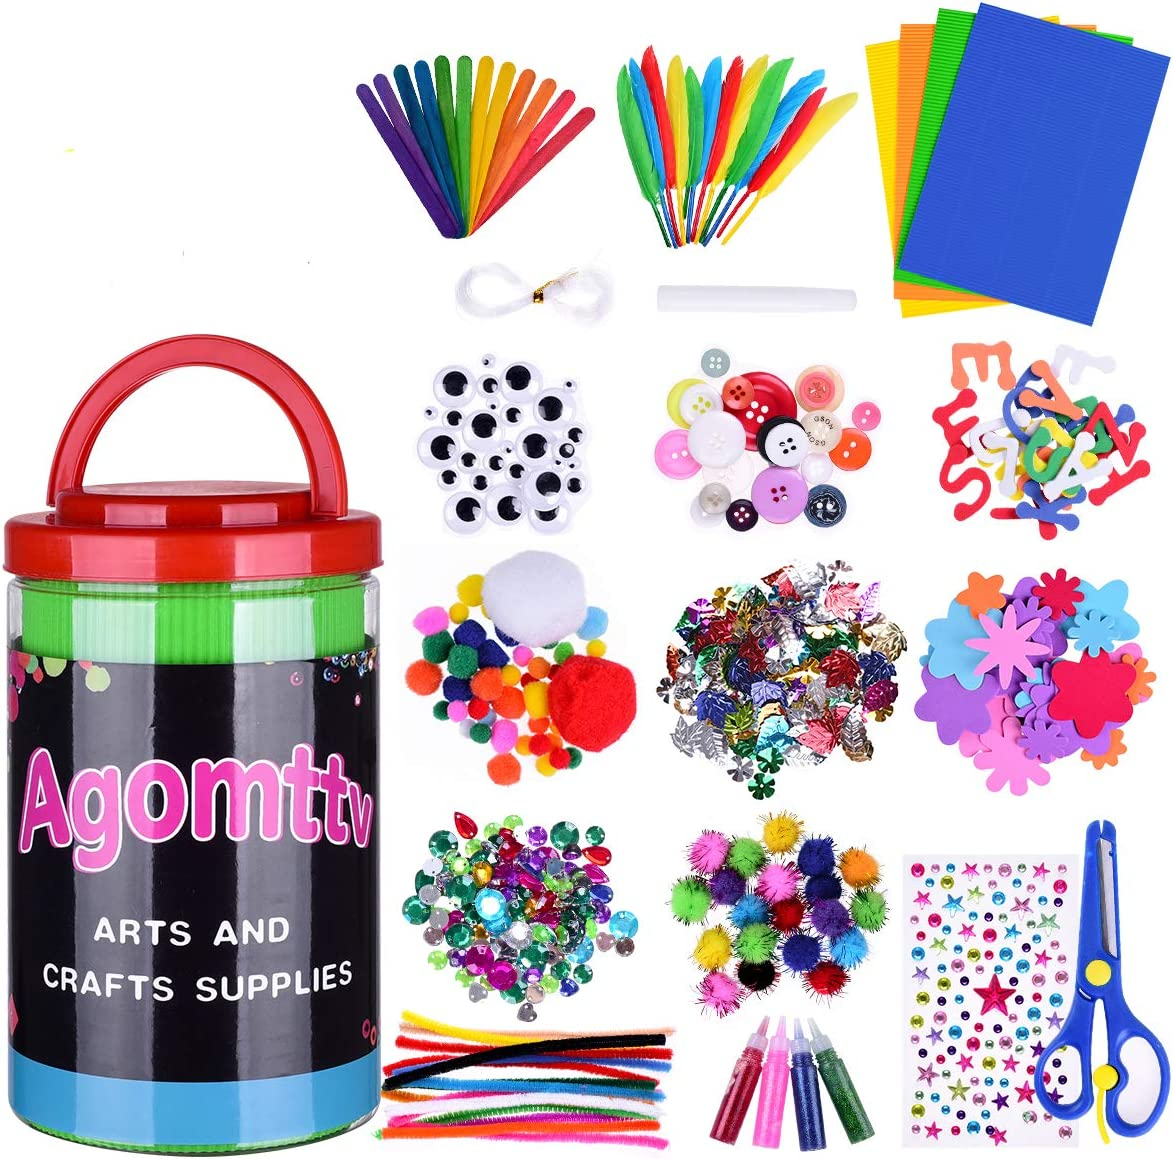 Amazon Com Arts And Crafts Supplies For Kids Toddler Diy Art Craft Kits Crafting Materials Toys Set For School Home Projects Craft Supplies With Pipe Cleaners For 4 5 6 7 8 9